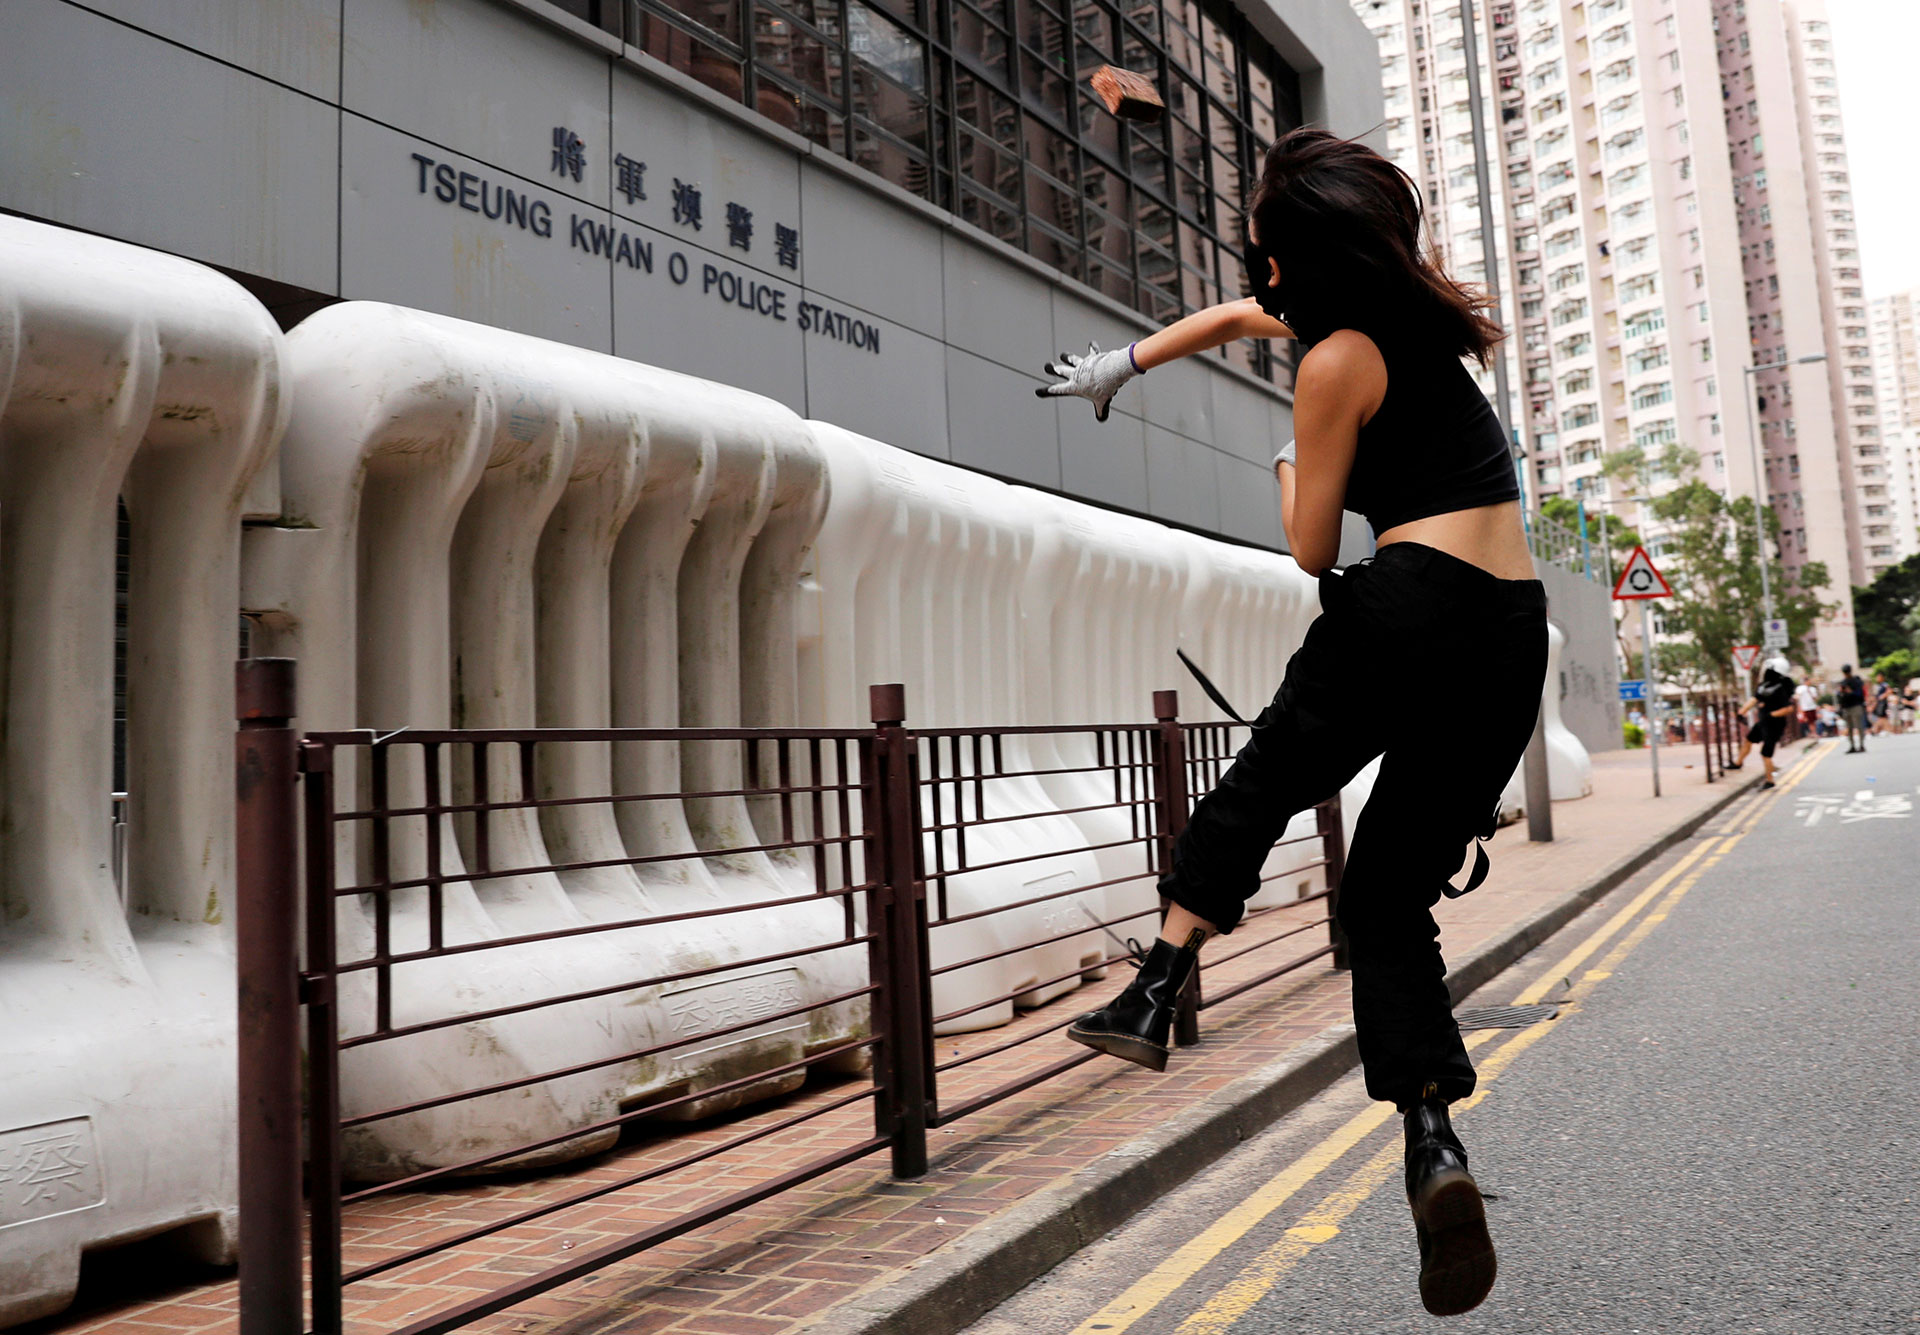 ESCALATION: A protester hurls a brick at a police station in Hong Kong's Tseung Kwan O district in early August. REUTERS/Kim Kyung-Hoon